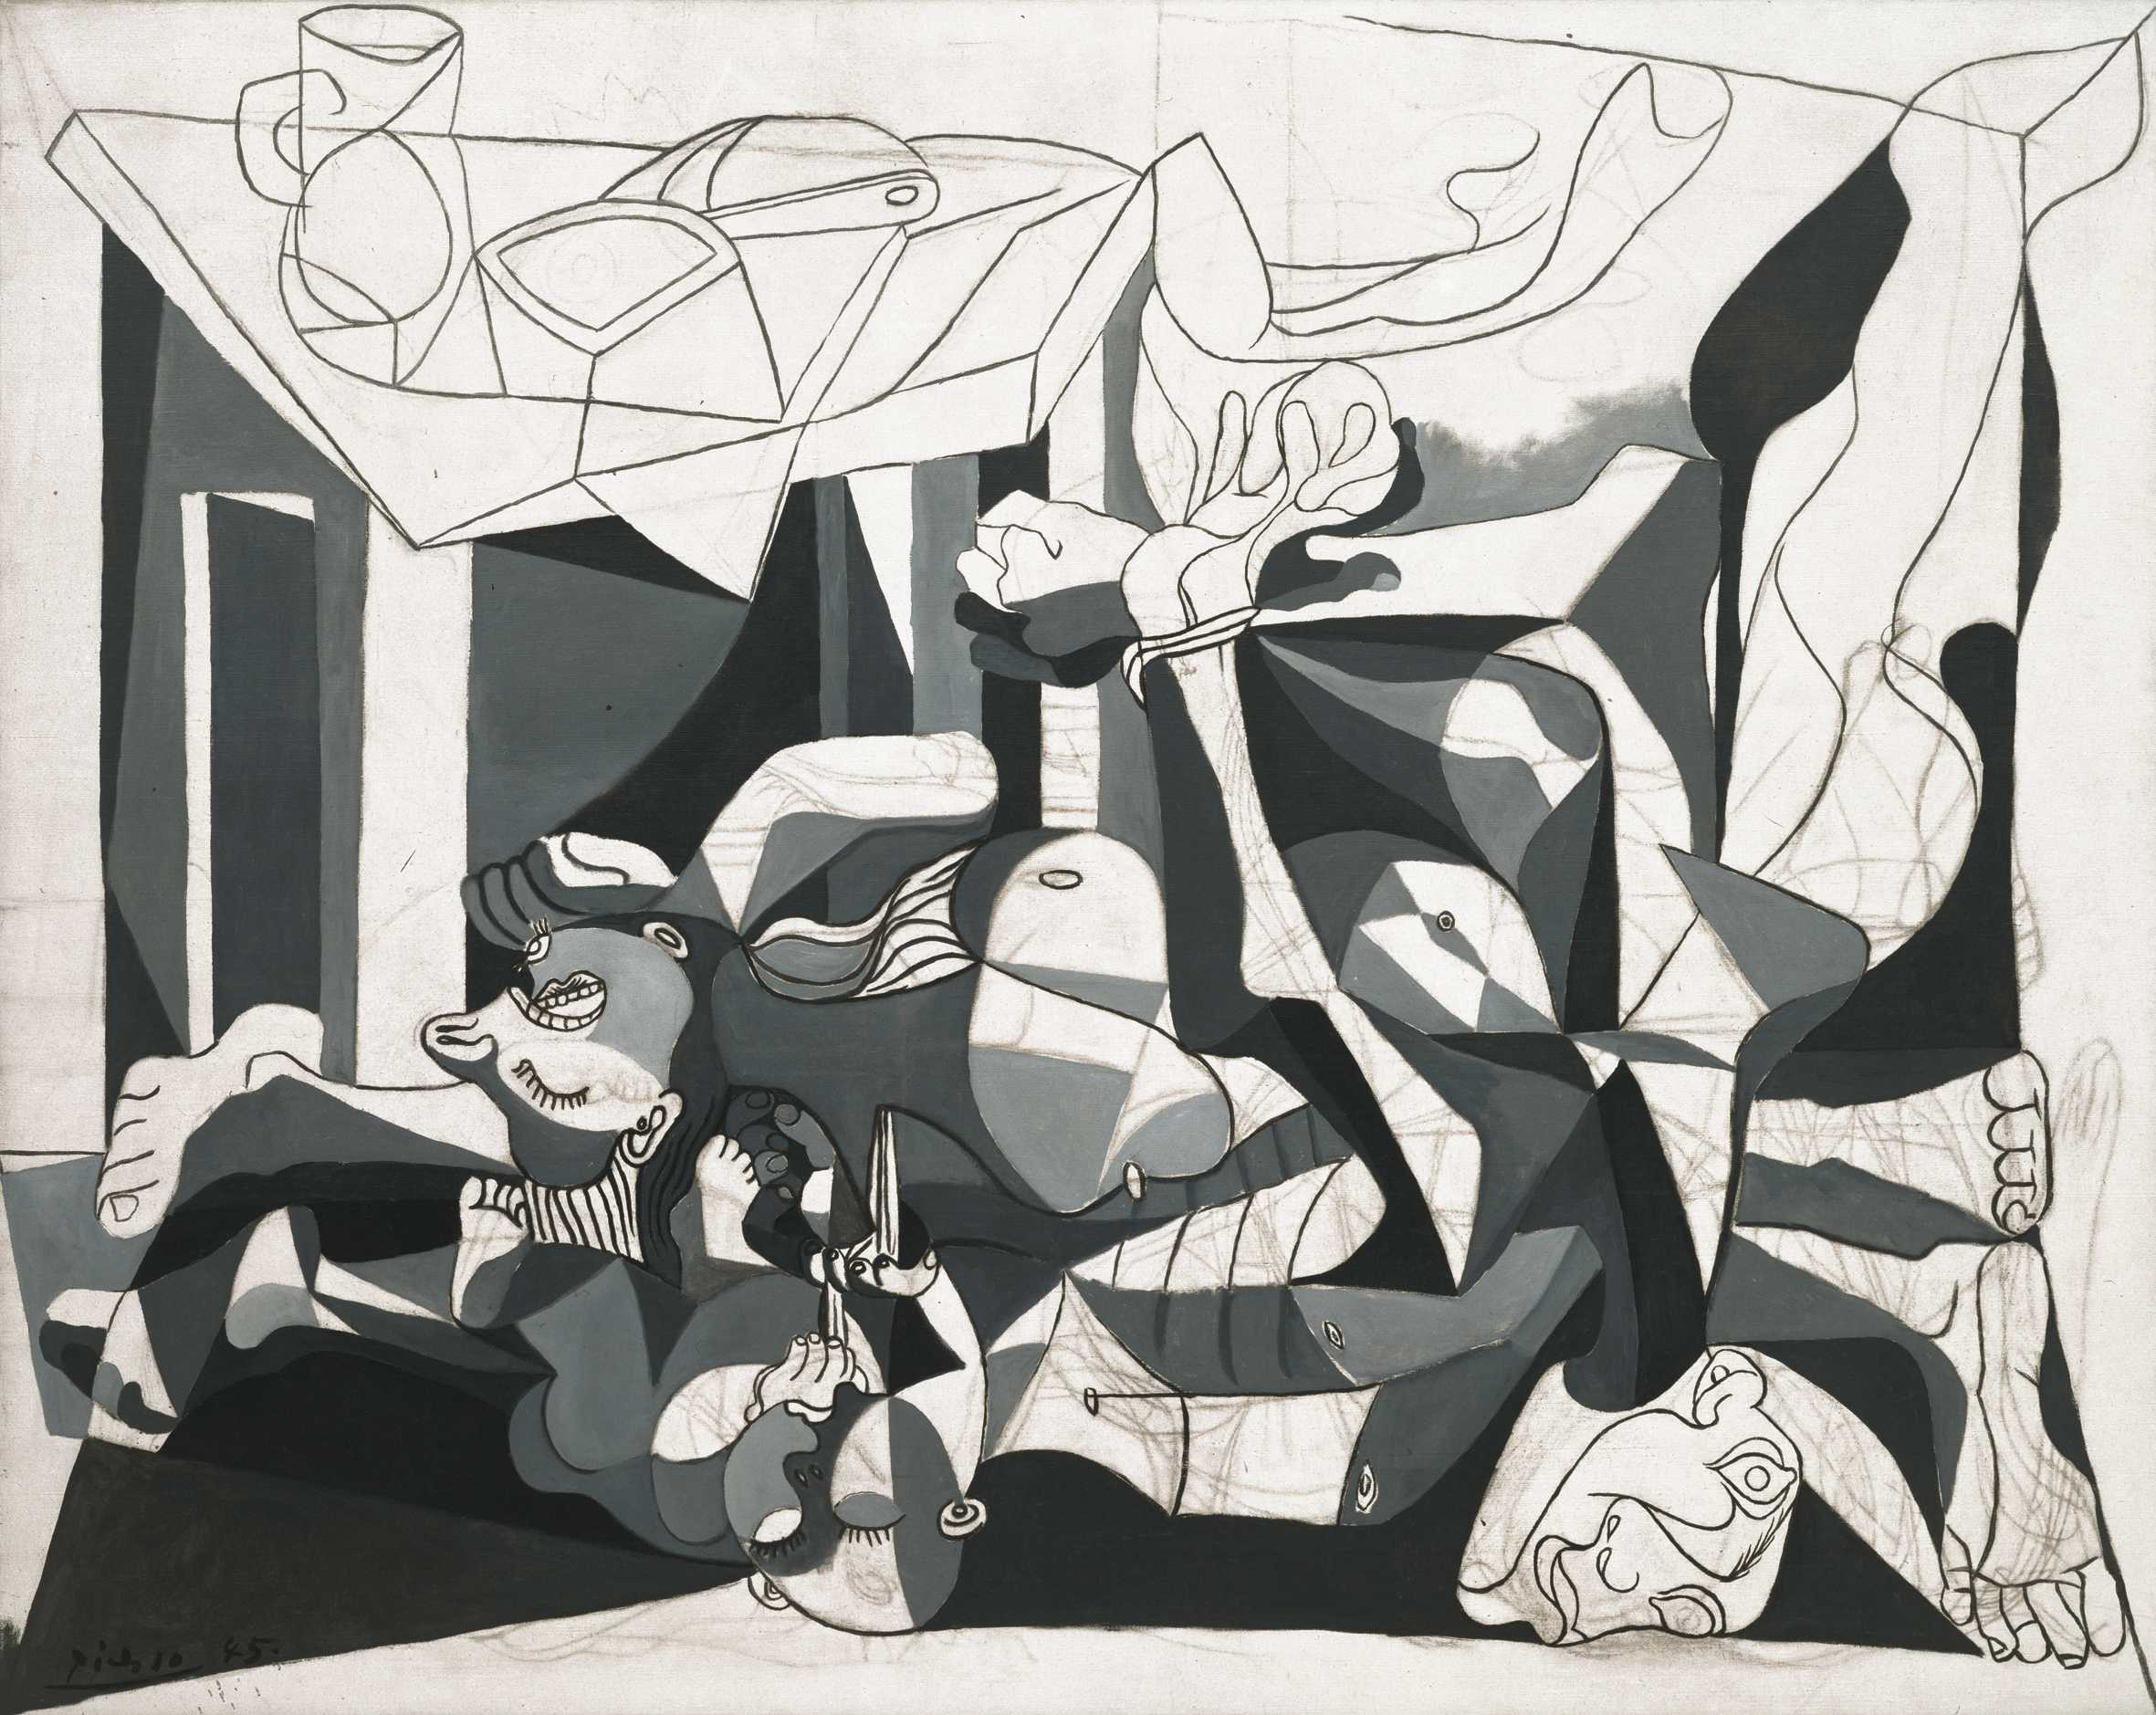 pablo picasso at mfa houston until the th culture spectator charnel pablo picasso